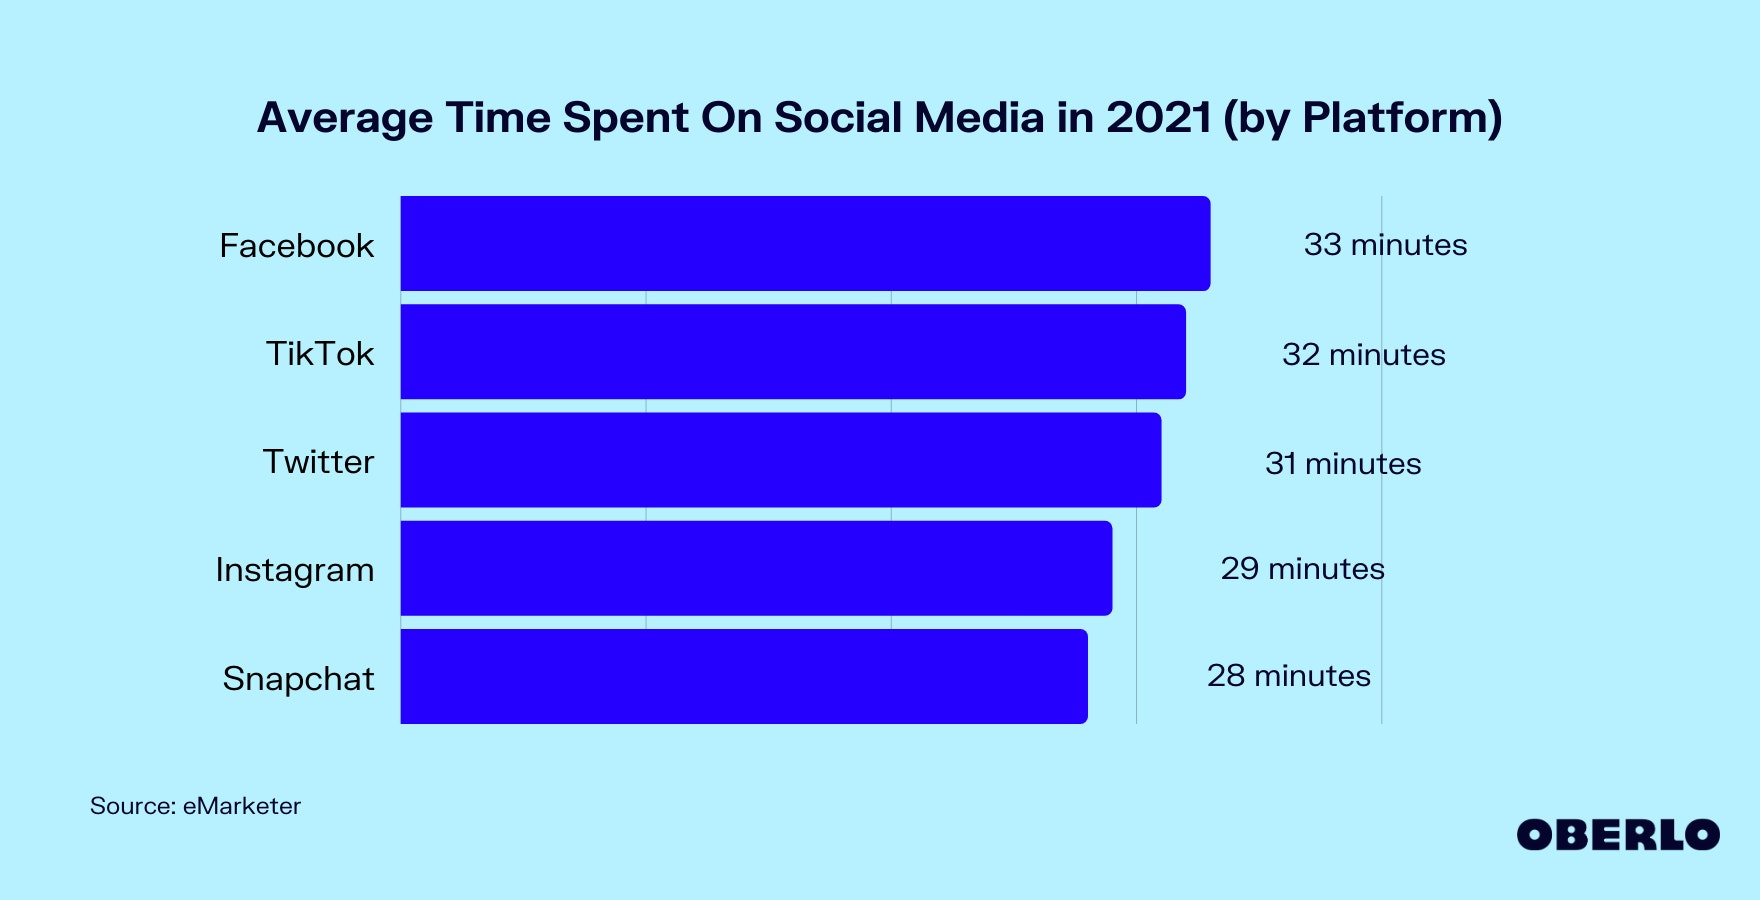 Average Time Spent On Social Media in 2021 (by Platform) Graphic